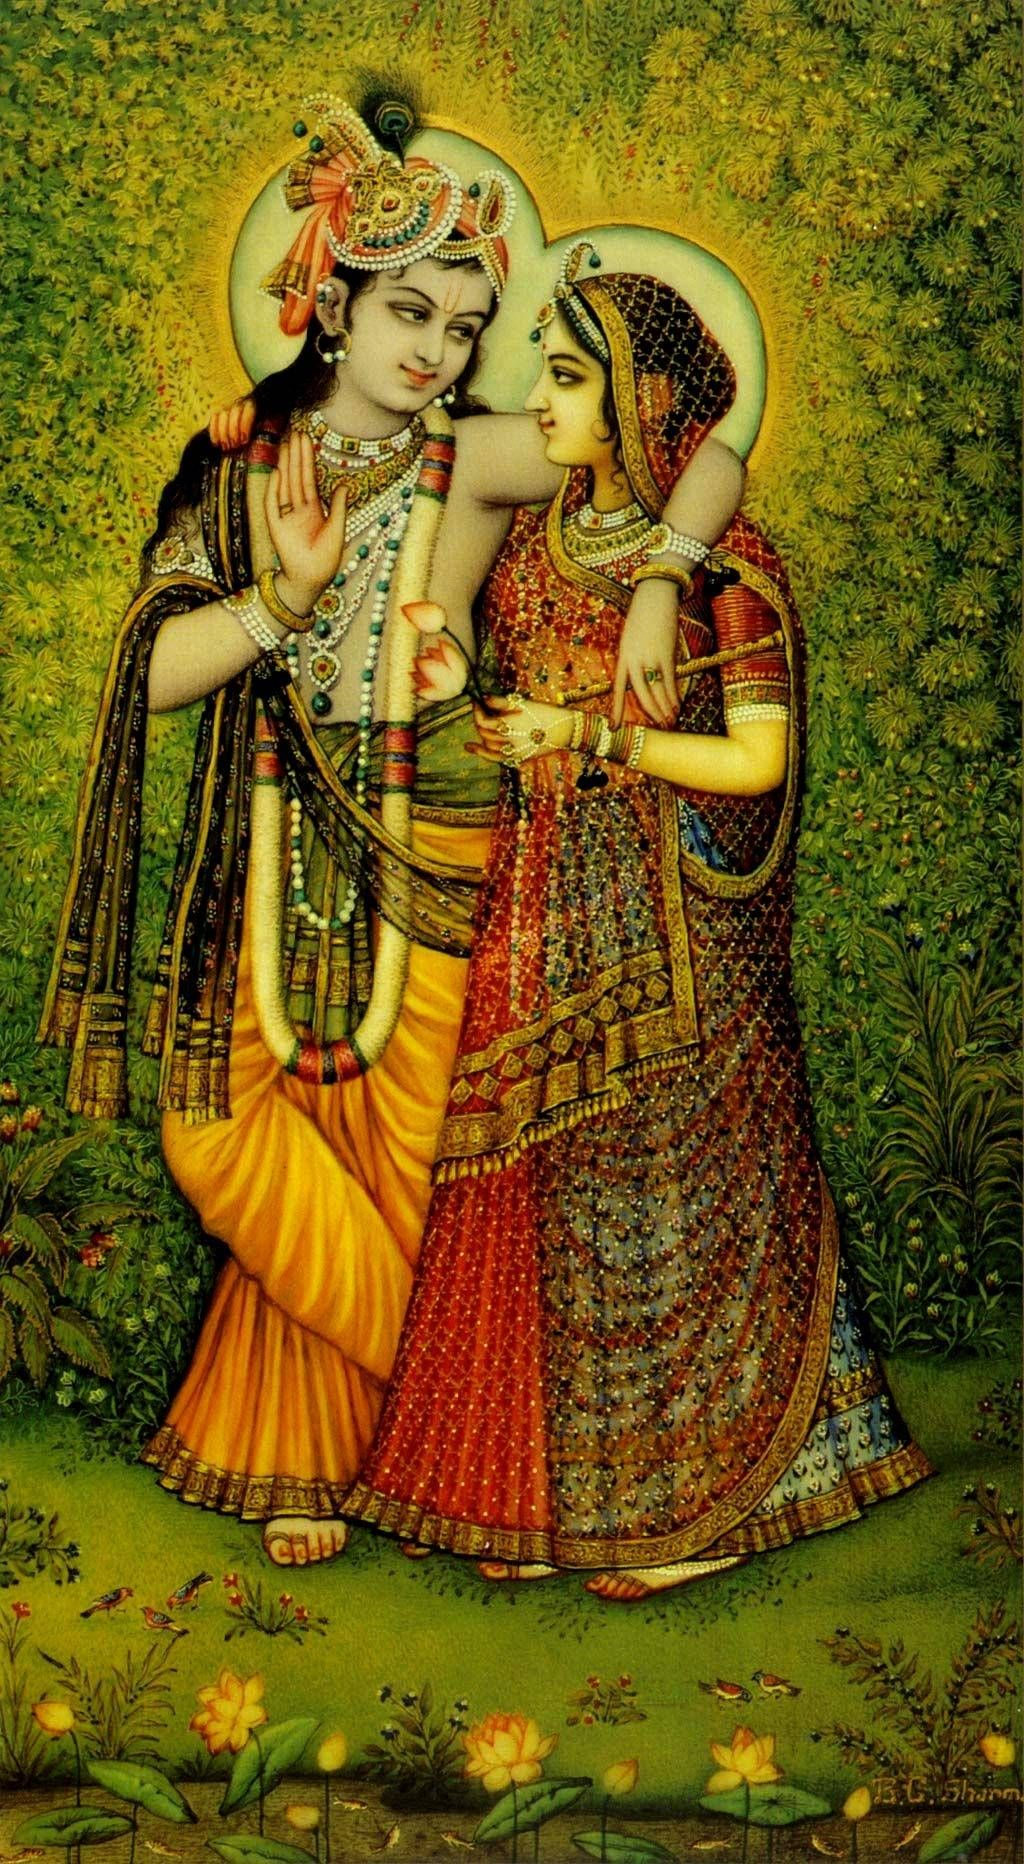 Radha Krishna Wall Hanging Is Most Beautiful For Love And Prem Massage For House Member Lord Krishna Images Krishna Radha Painting Radha Krishna Art